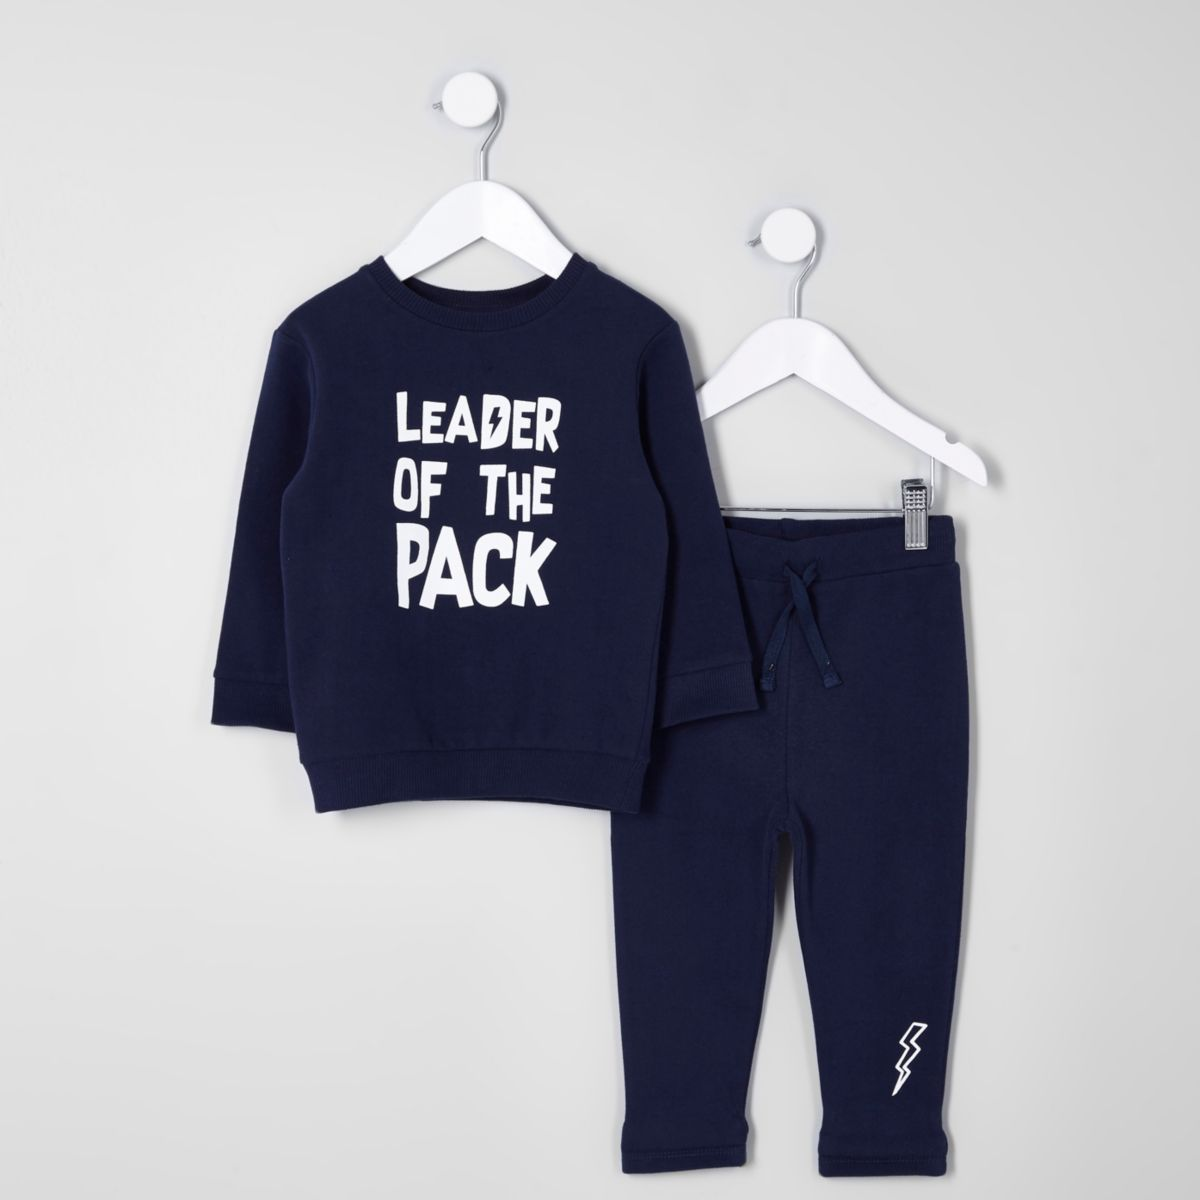 Mini boys navy 'leader' sweatshirt outfit